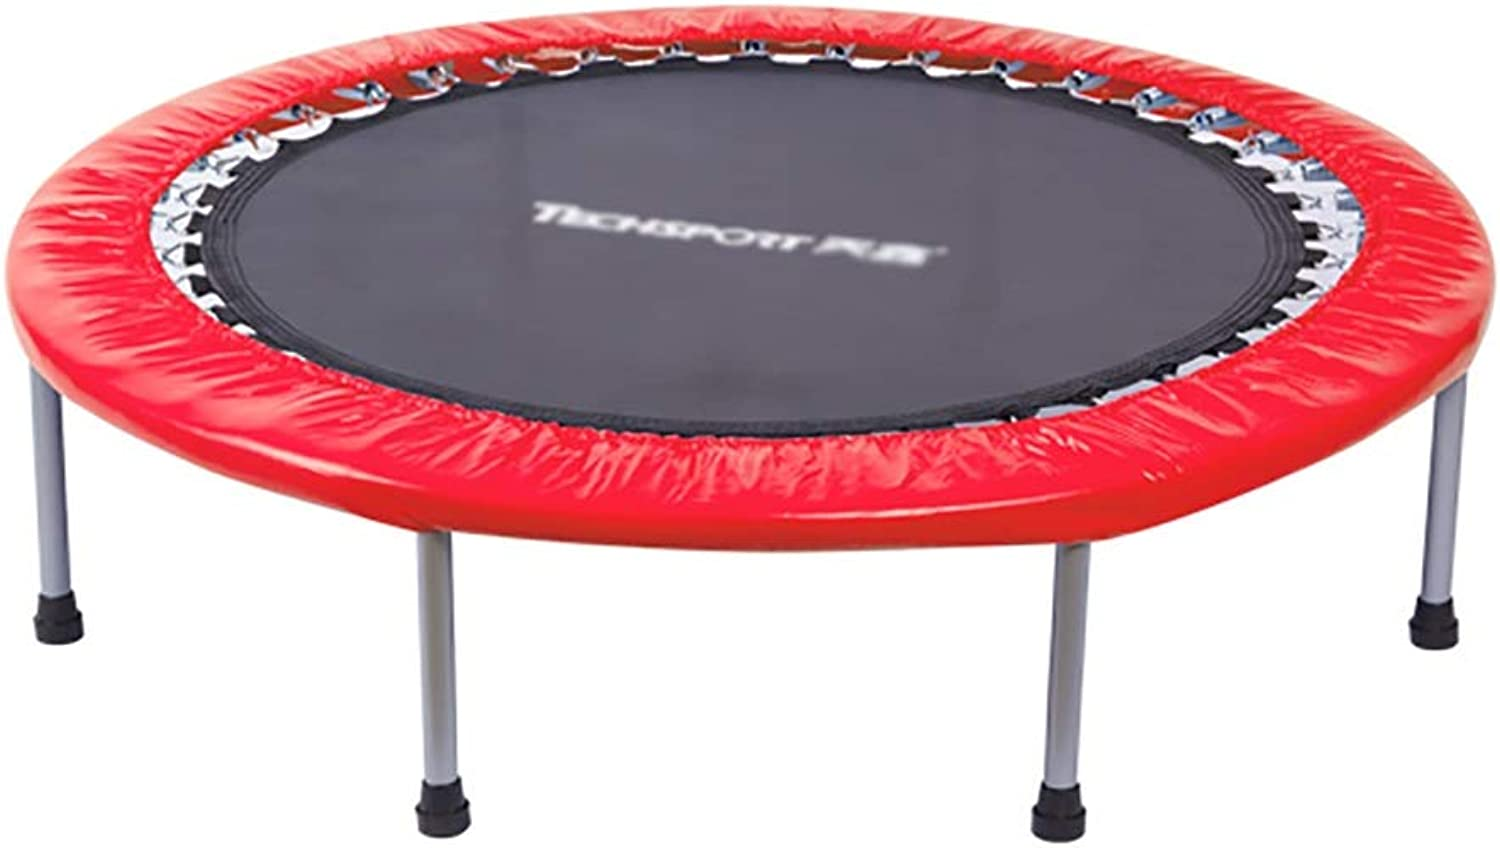 TRAMPOLINE ZCJB 48'' Exercise Mini for Indoor garden, 6 Legs, max load 330 Pounds, Red